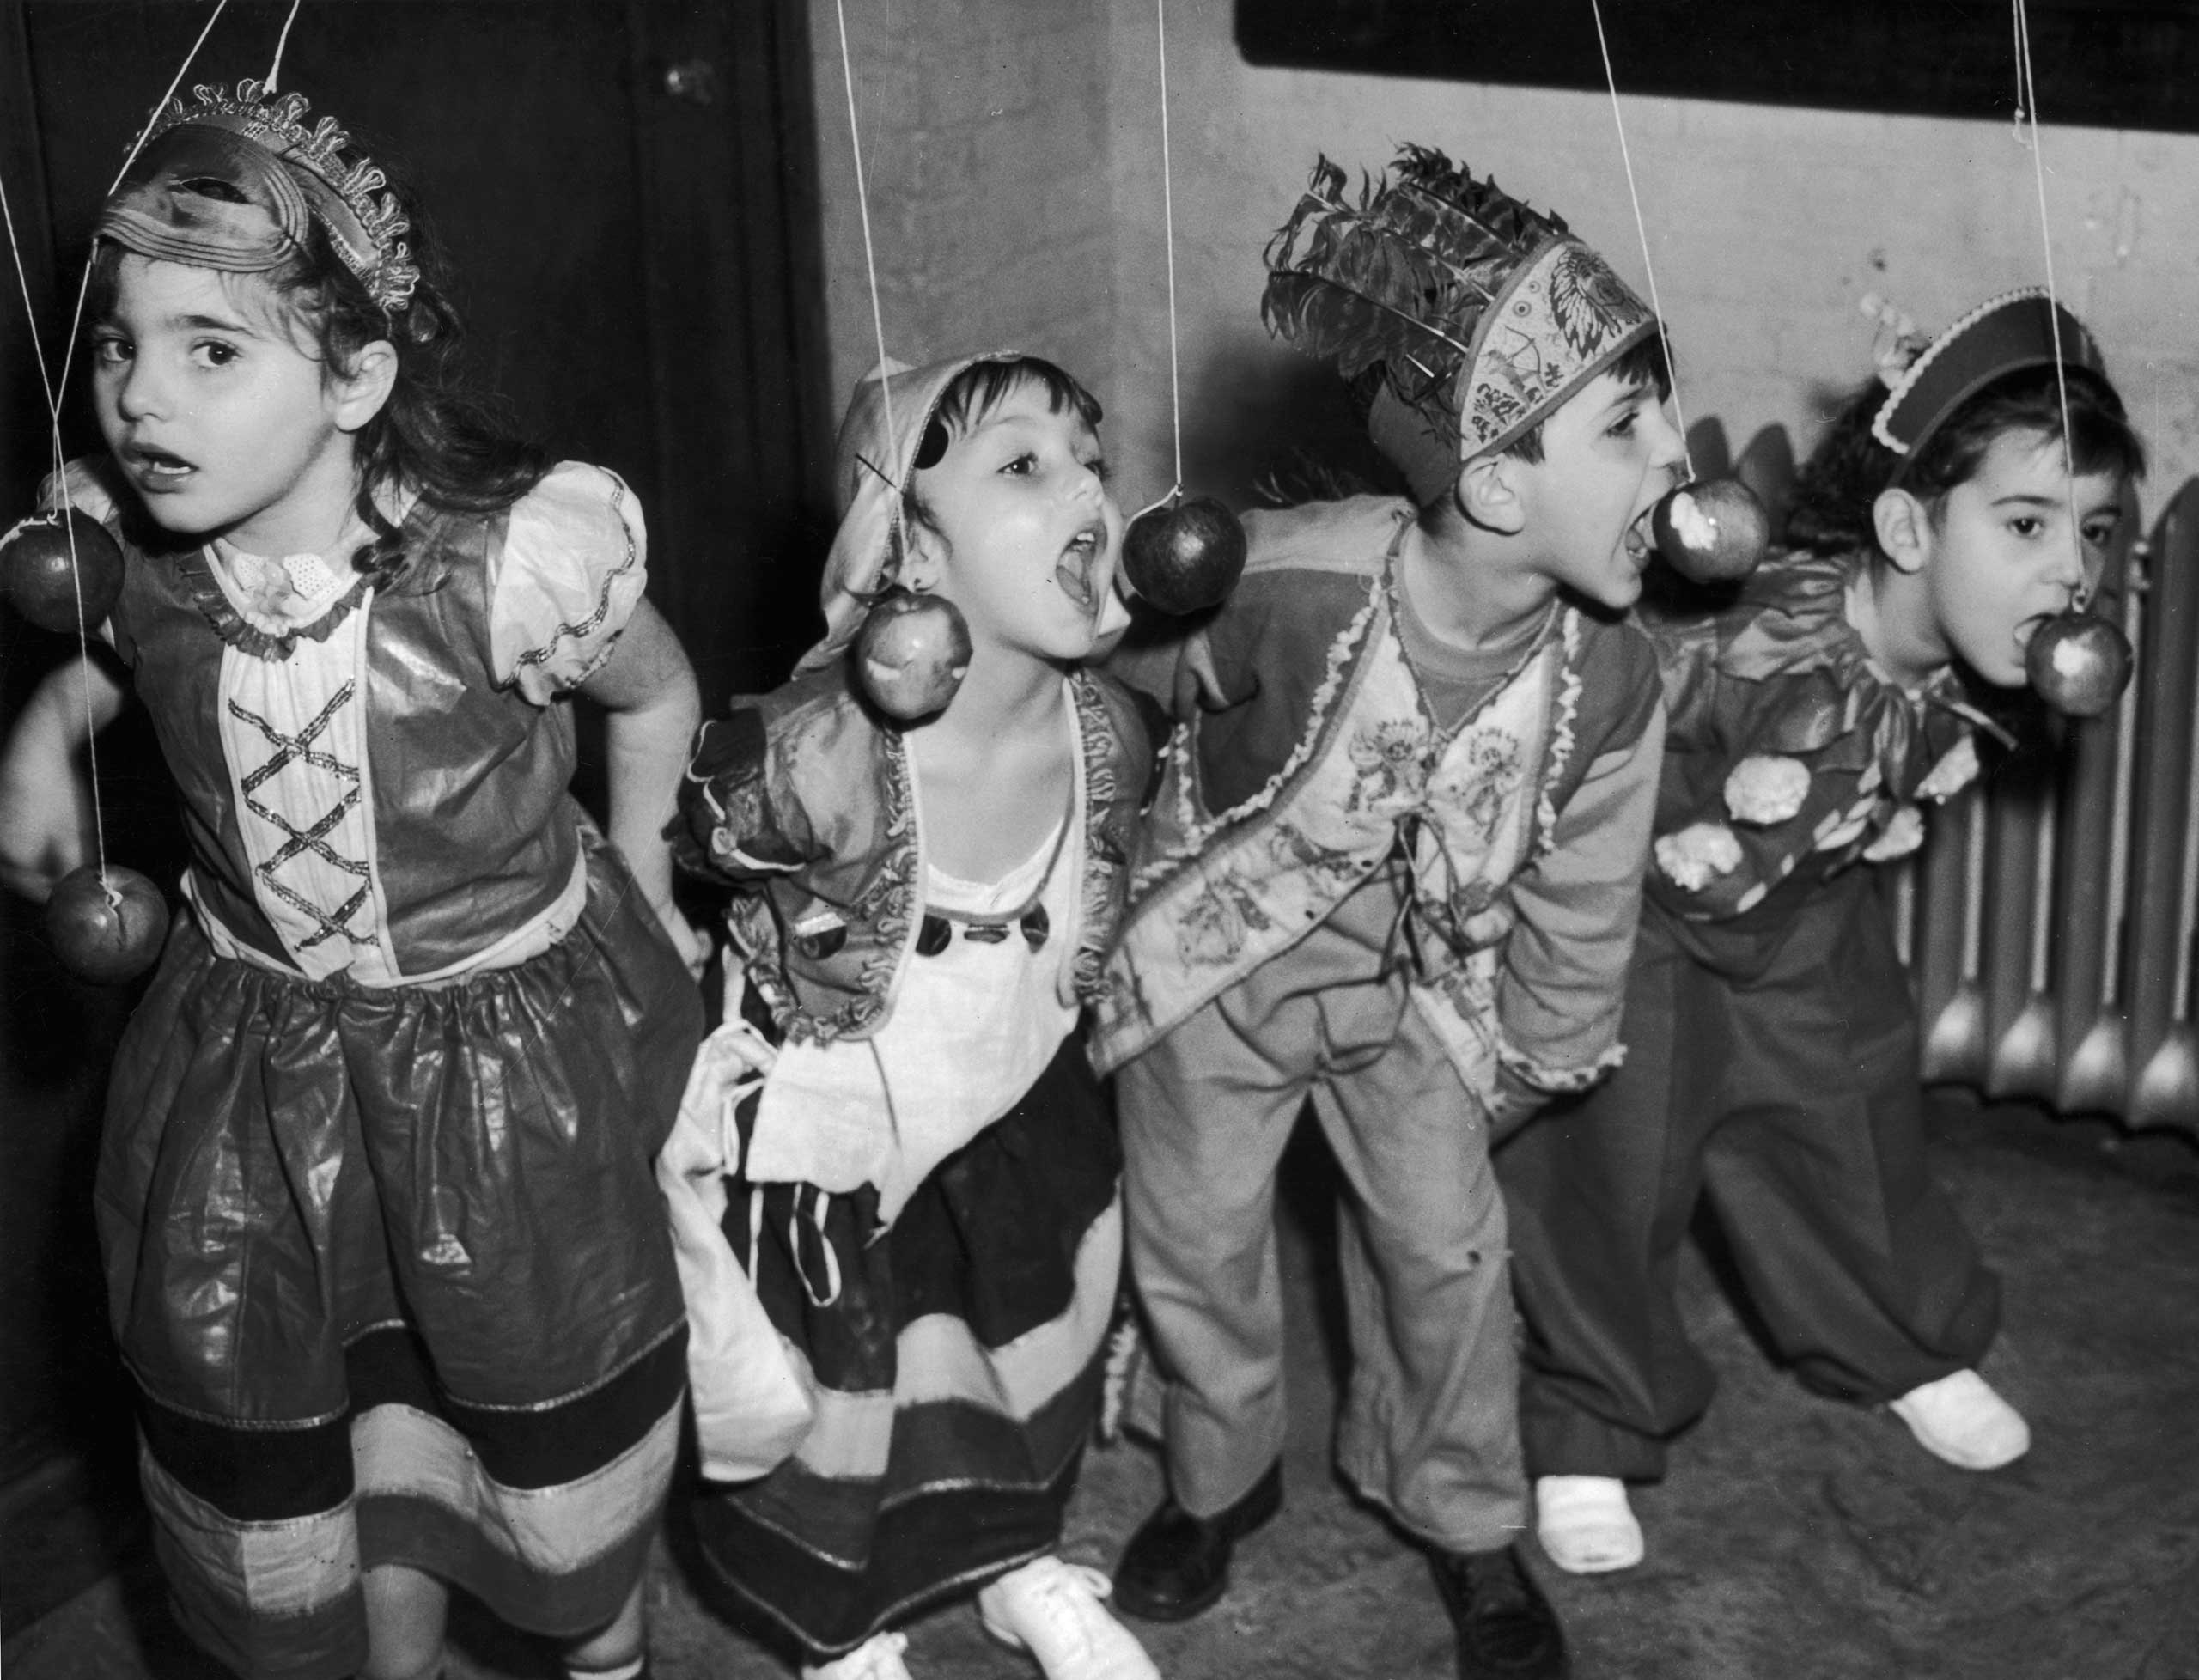 Children celebrate at a Halloween party in New York City circa 1940.